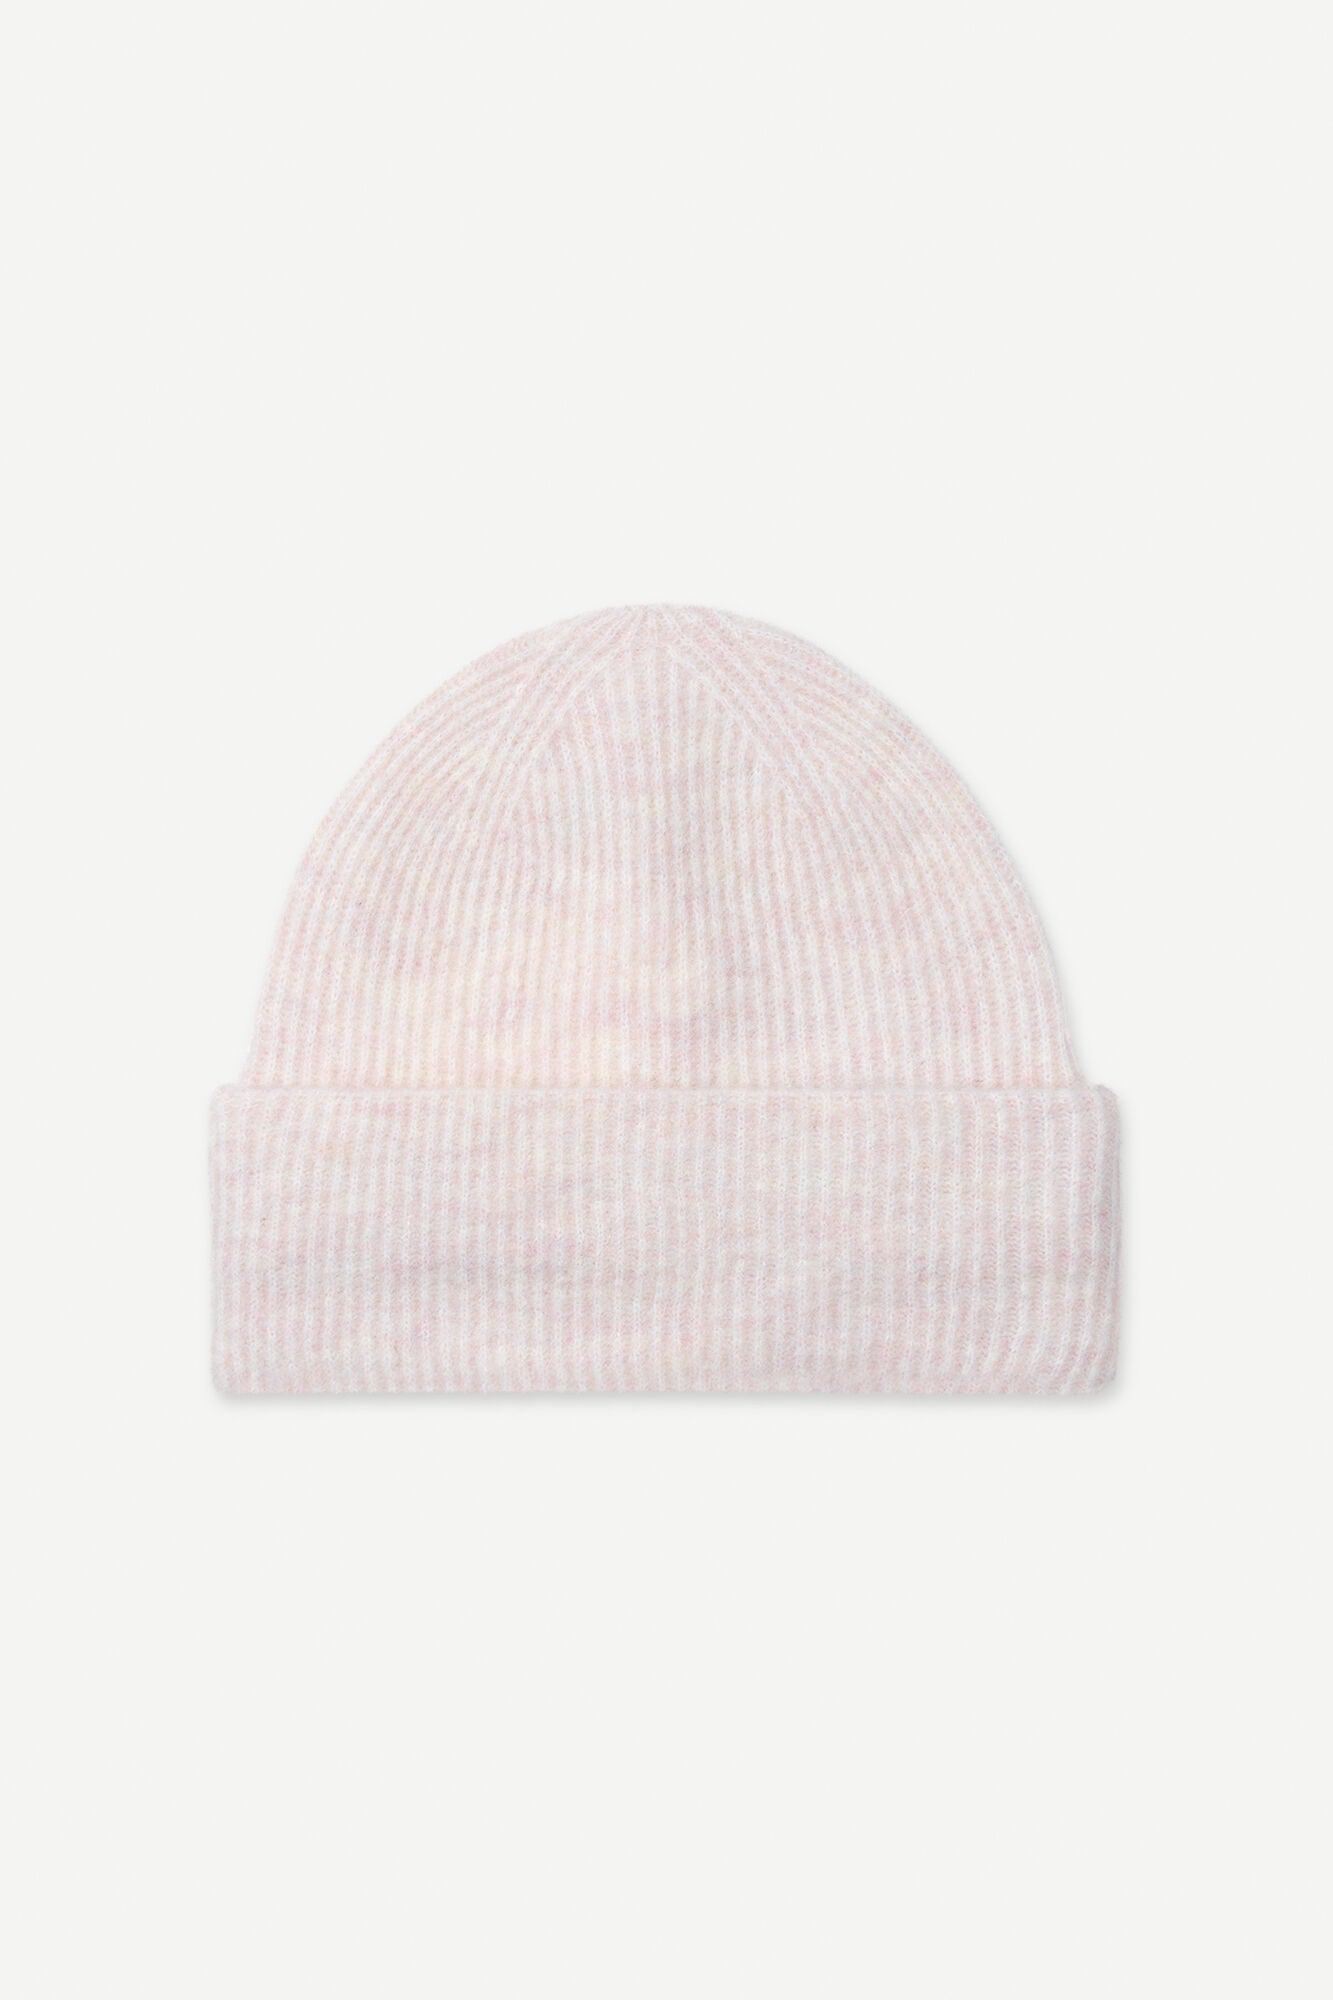 Nor hat 7355 - Light Pink